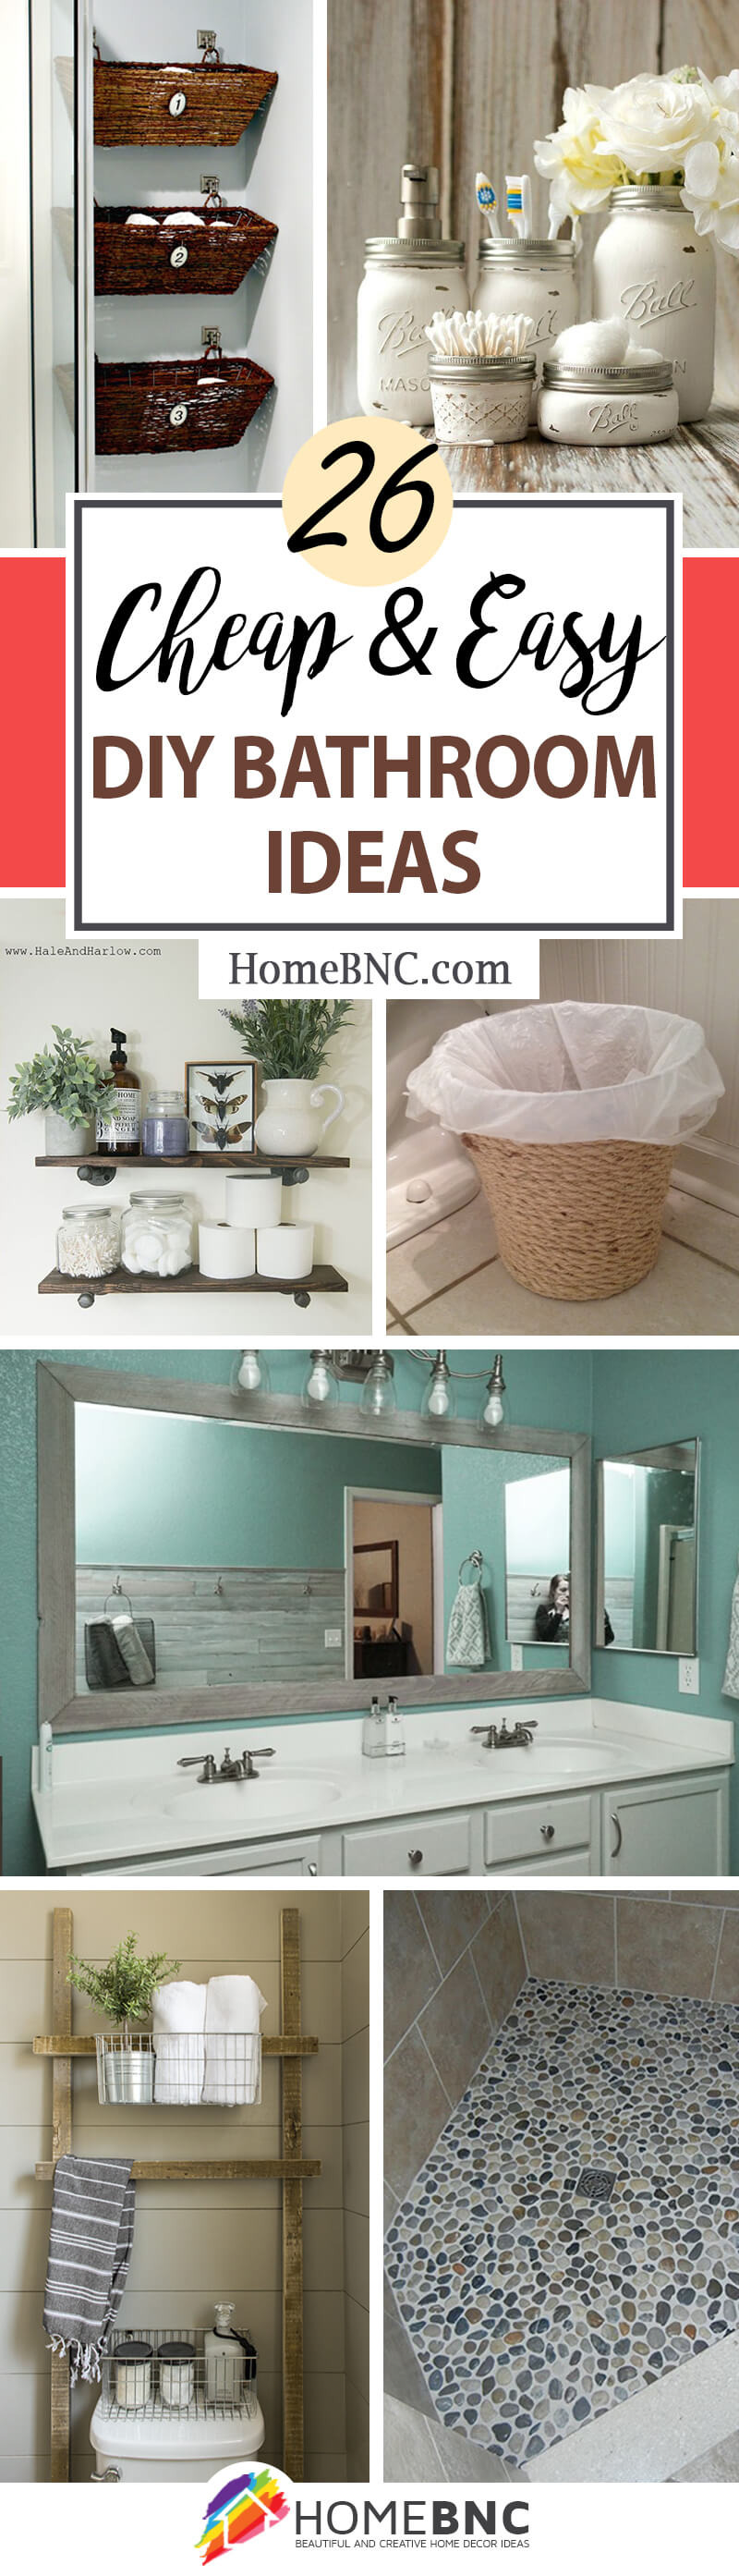 dŸ›€ diy bathroom decorating ideas on a bud dŸ›€ home decor 3